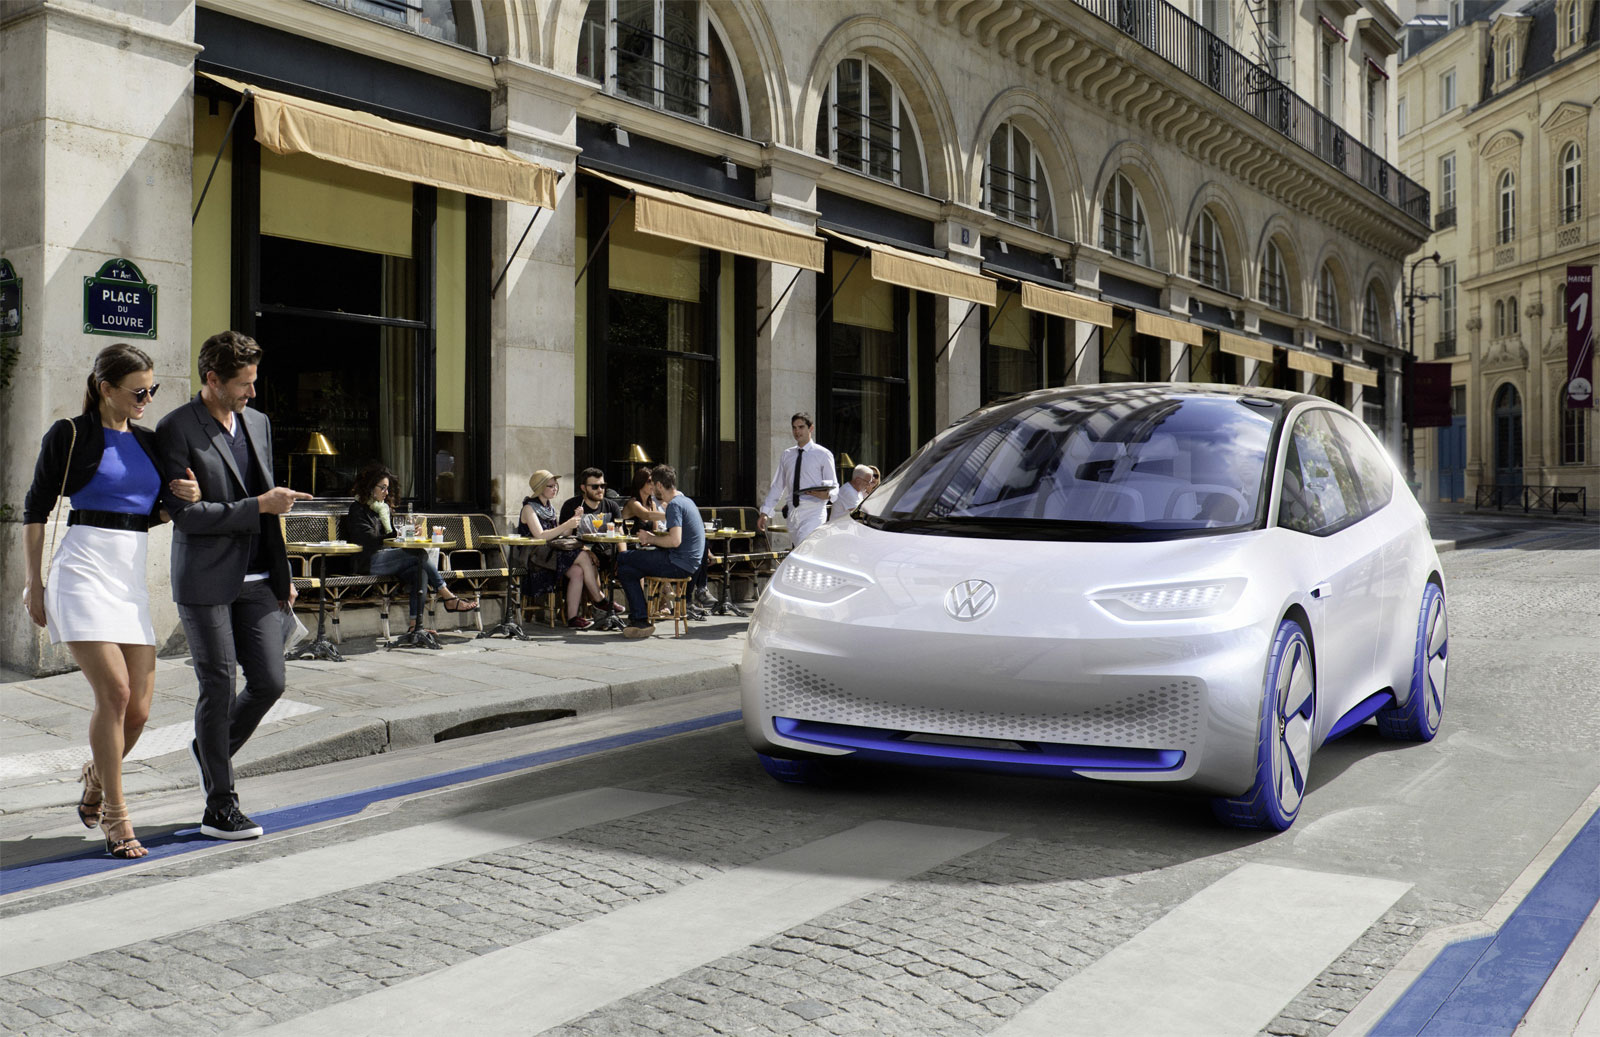 Volkswagen Puts Some Spark In The Electric Car Sector With Its I.D Showcar 5